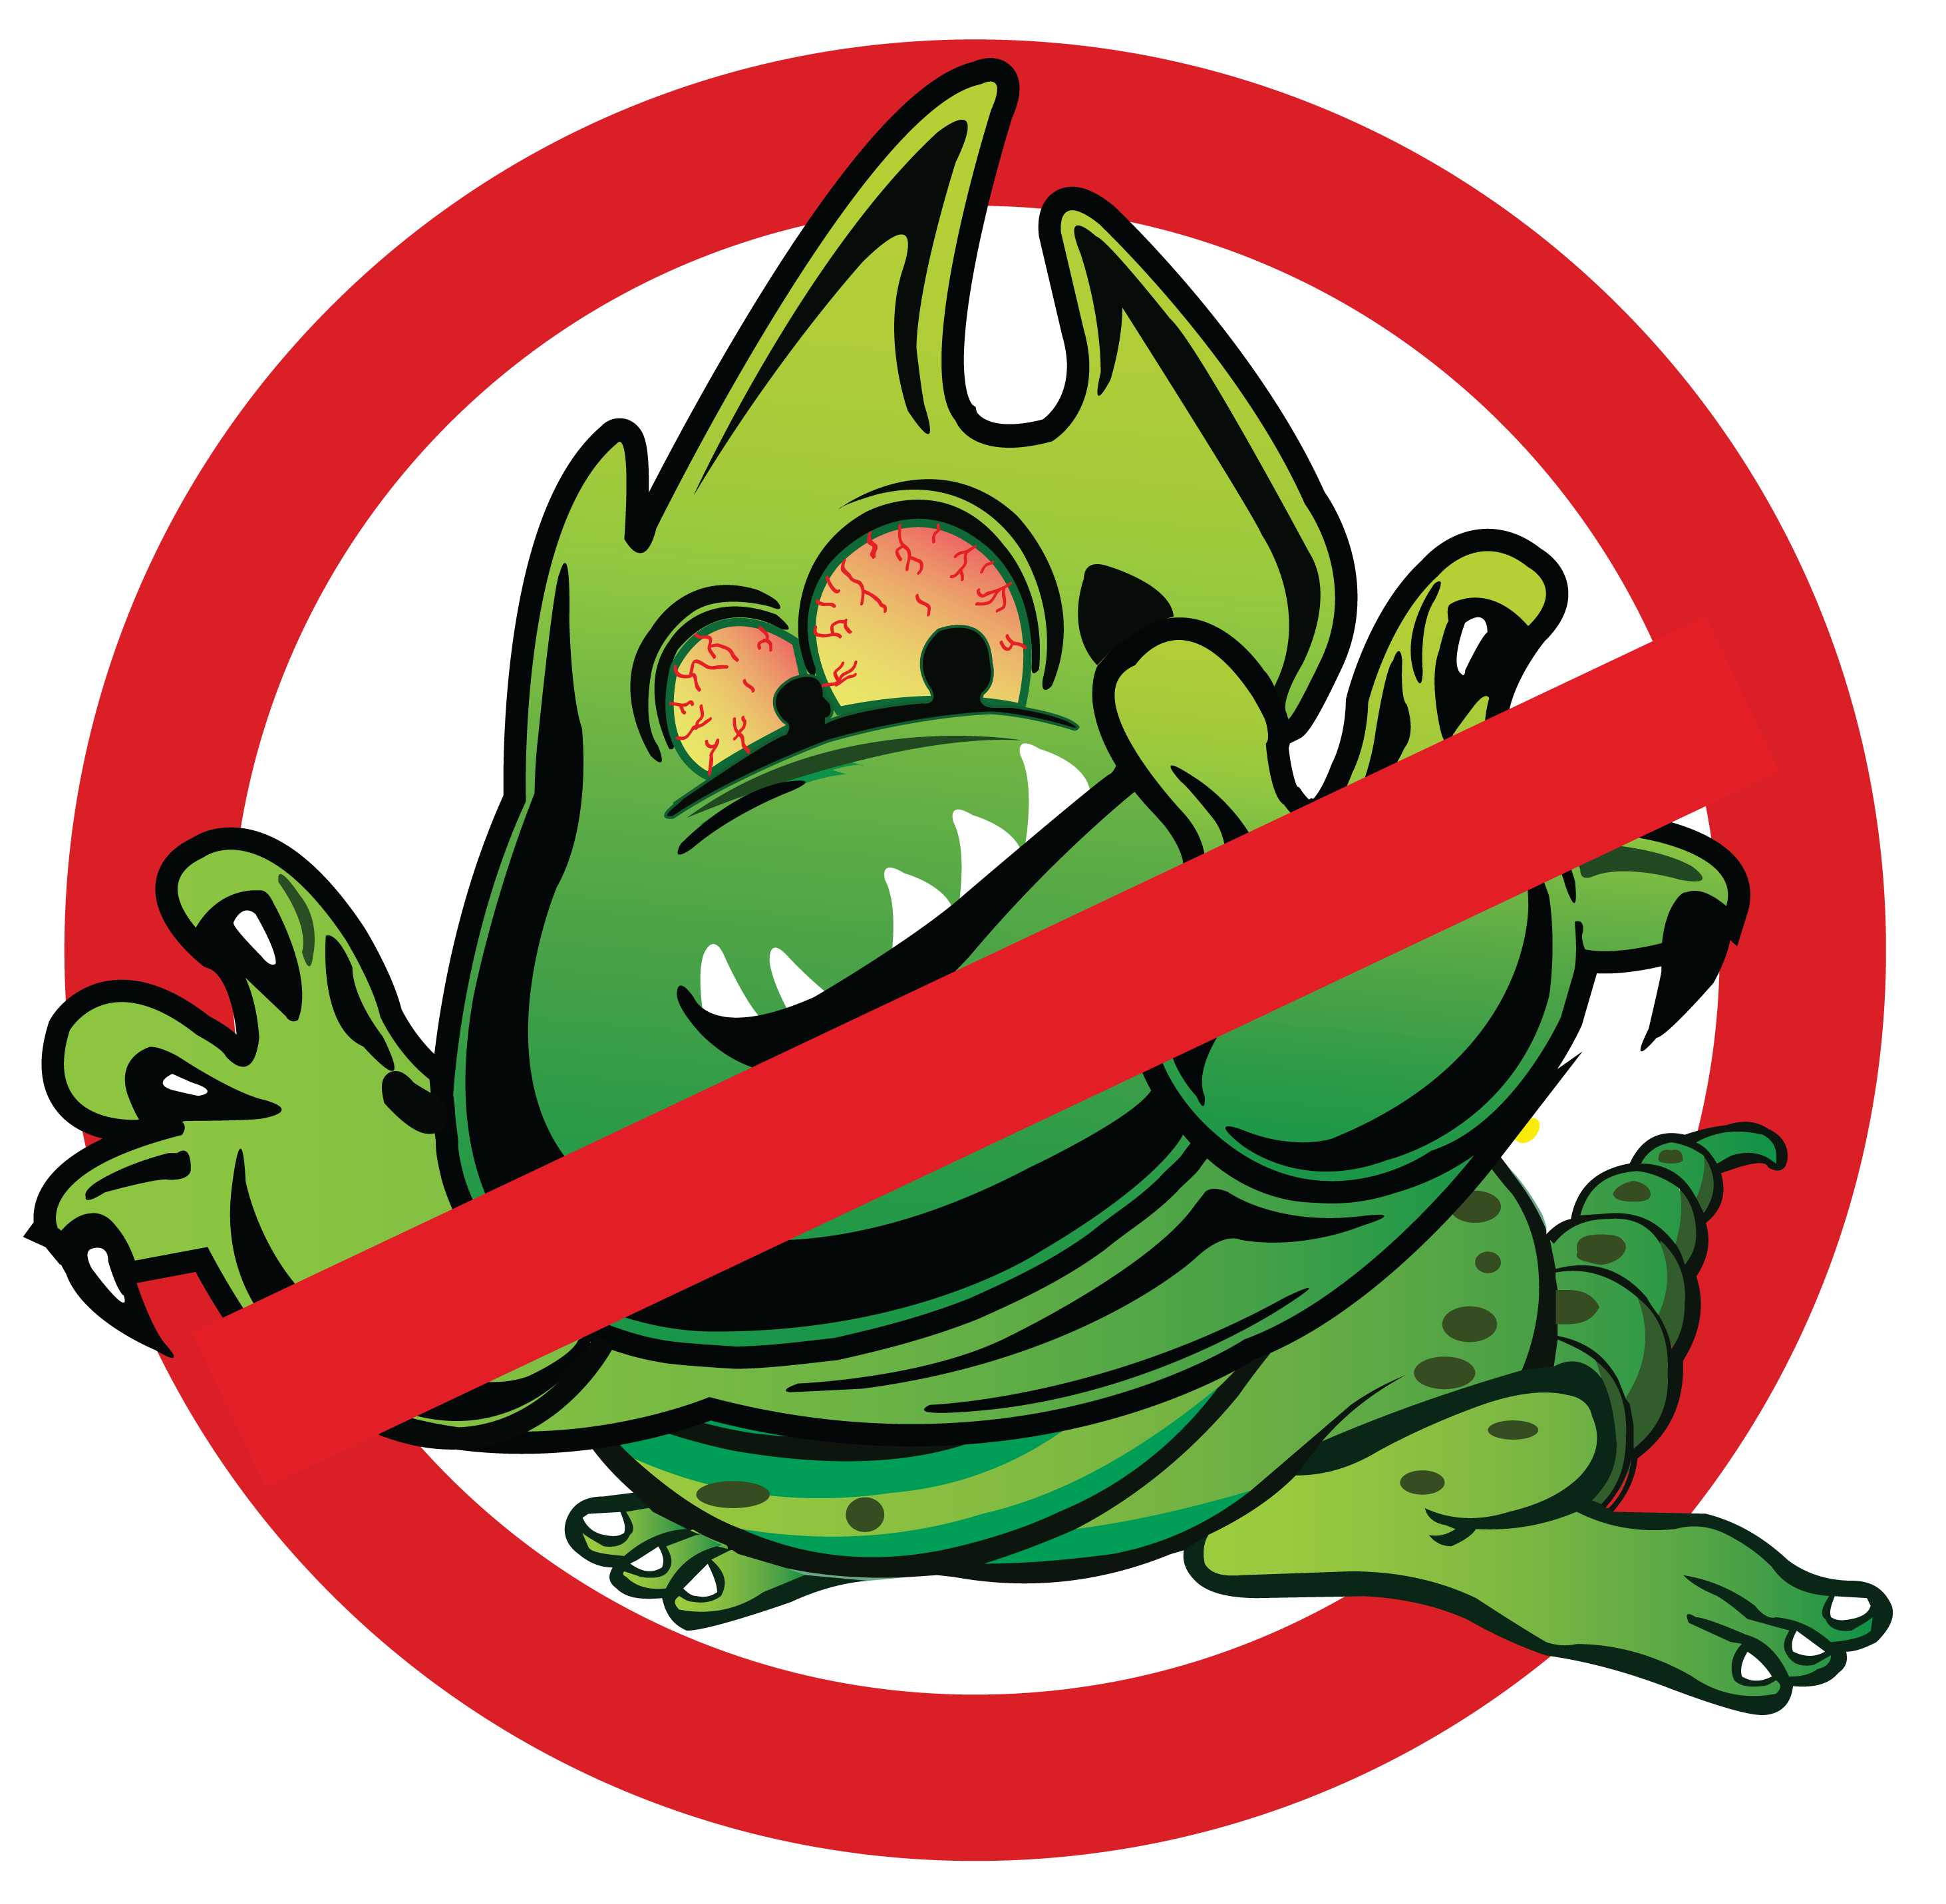 Bacteria clipart infection control. News from the chemical